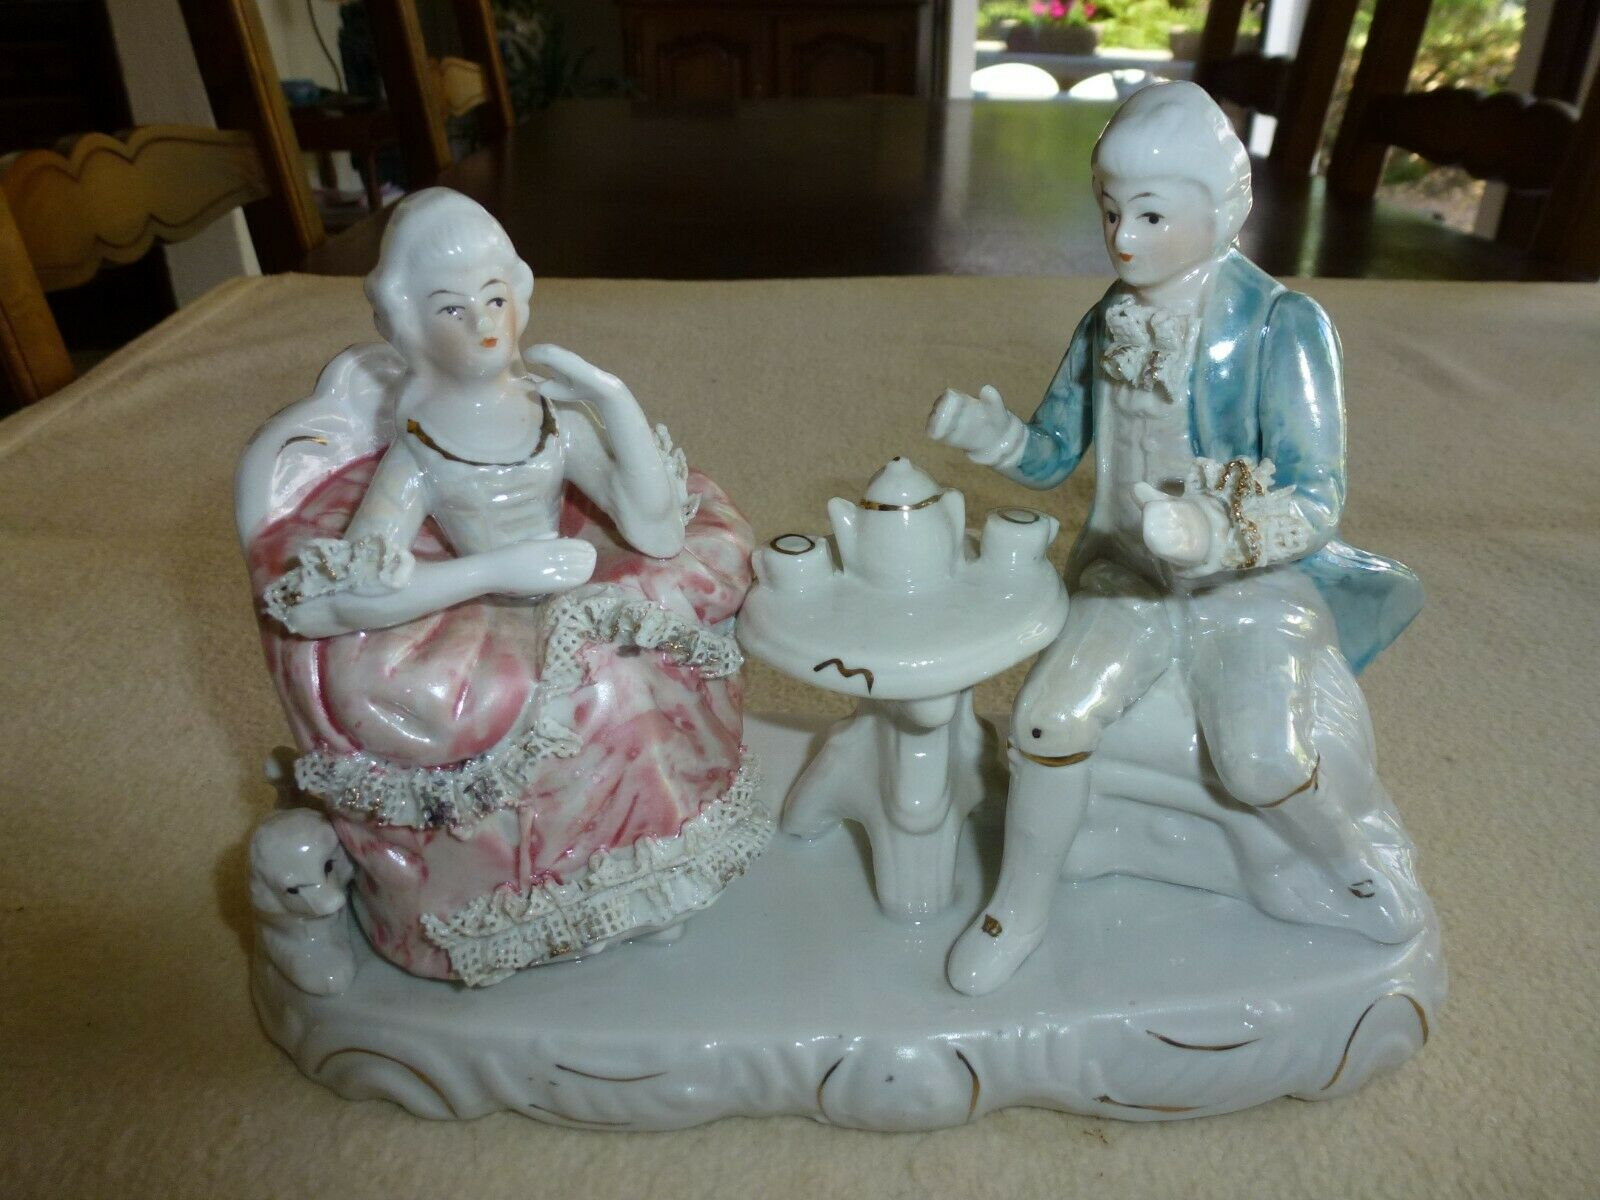 Superbe figurine en porcelaine couple prenant le the